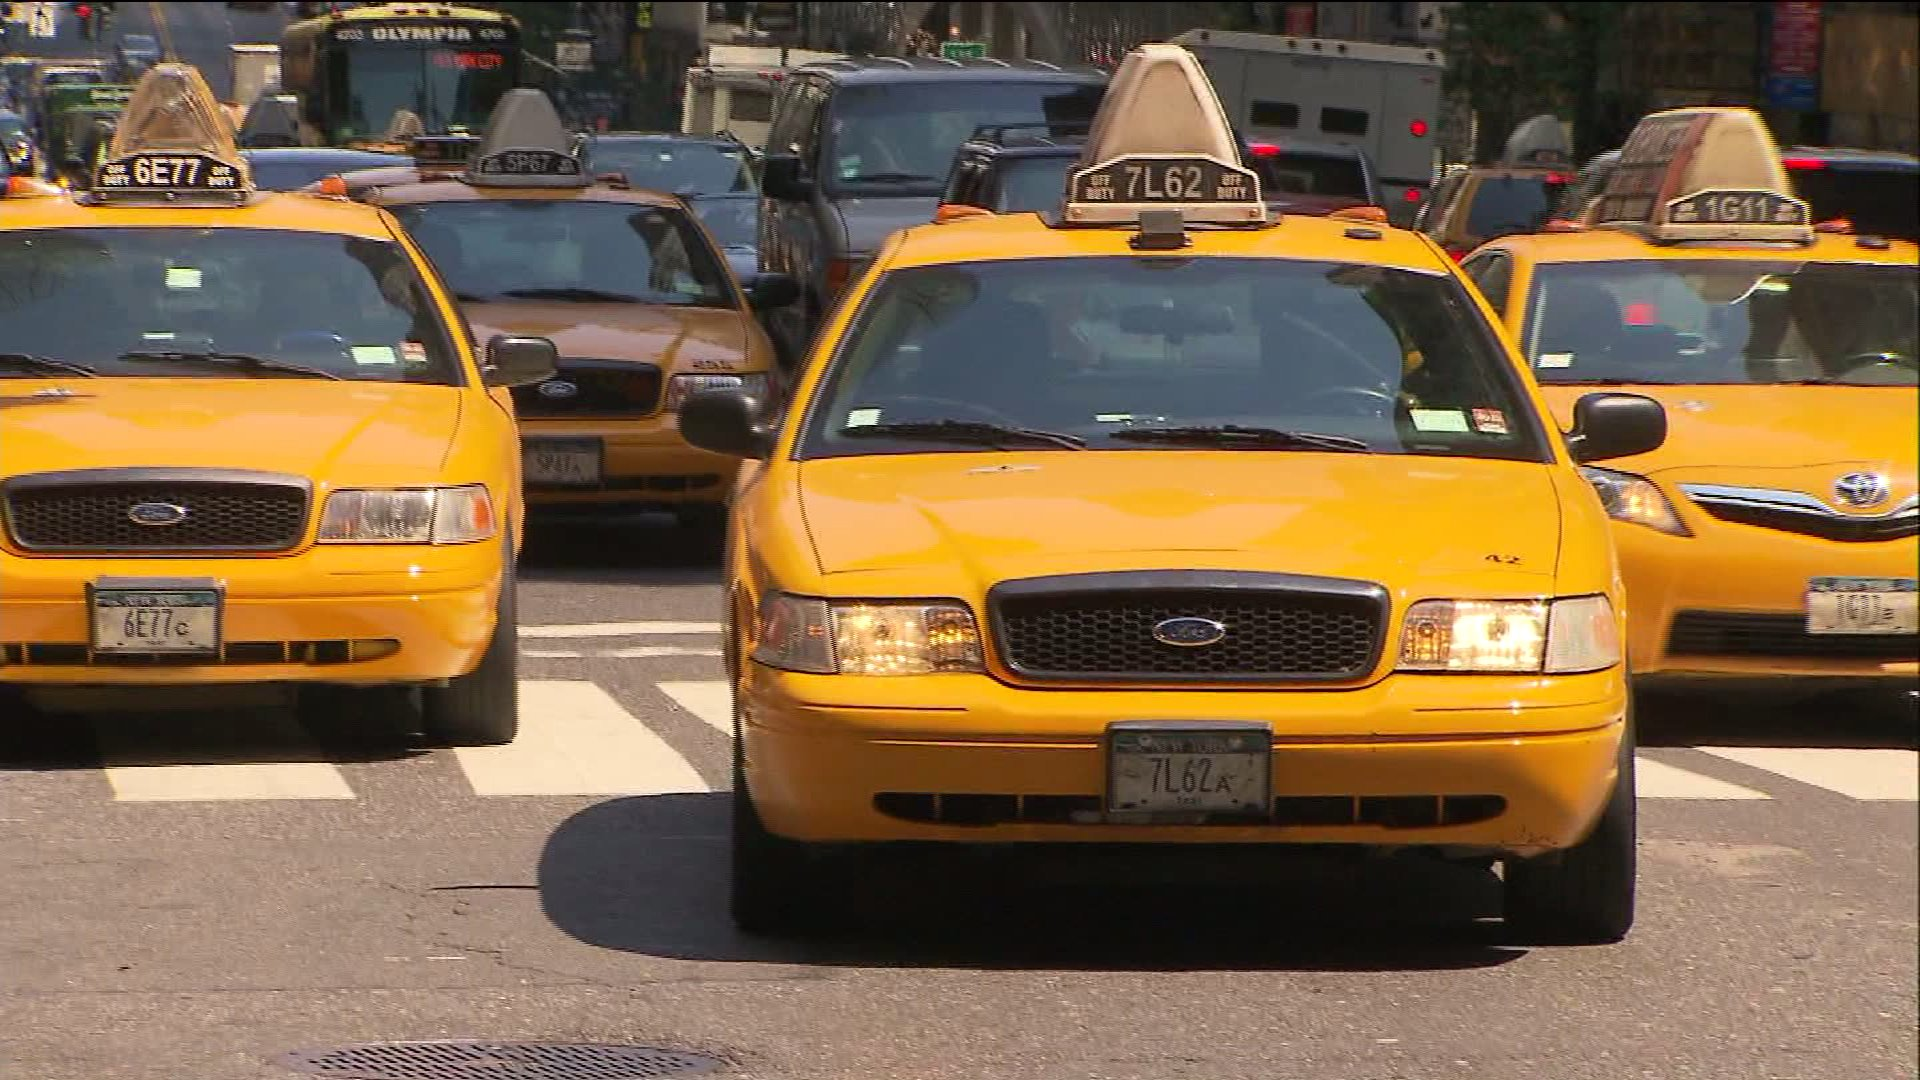 File photo of taxi cab in New York City